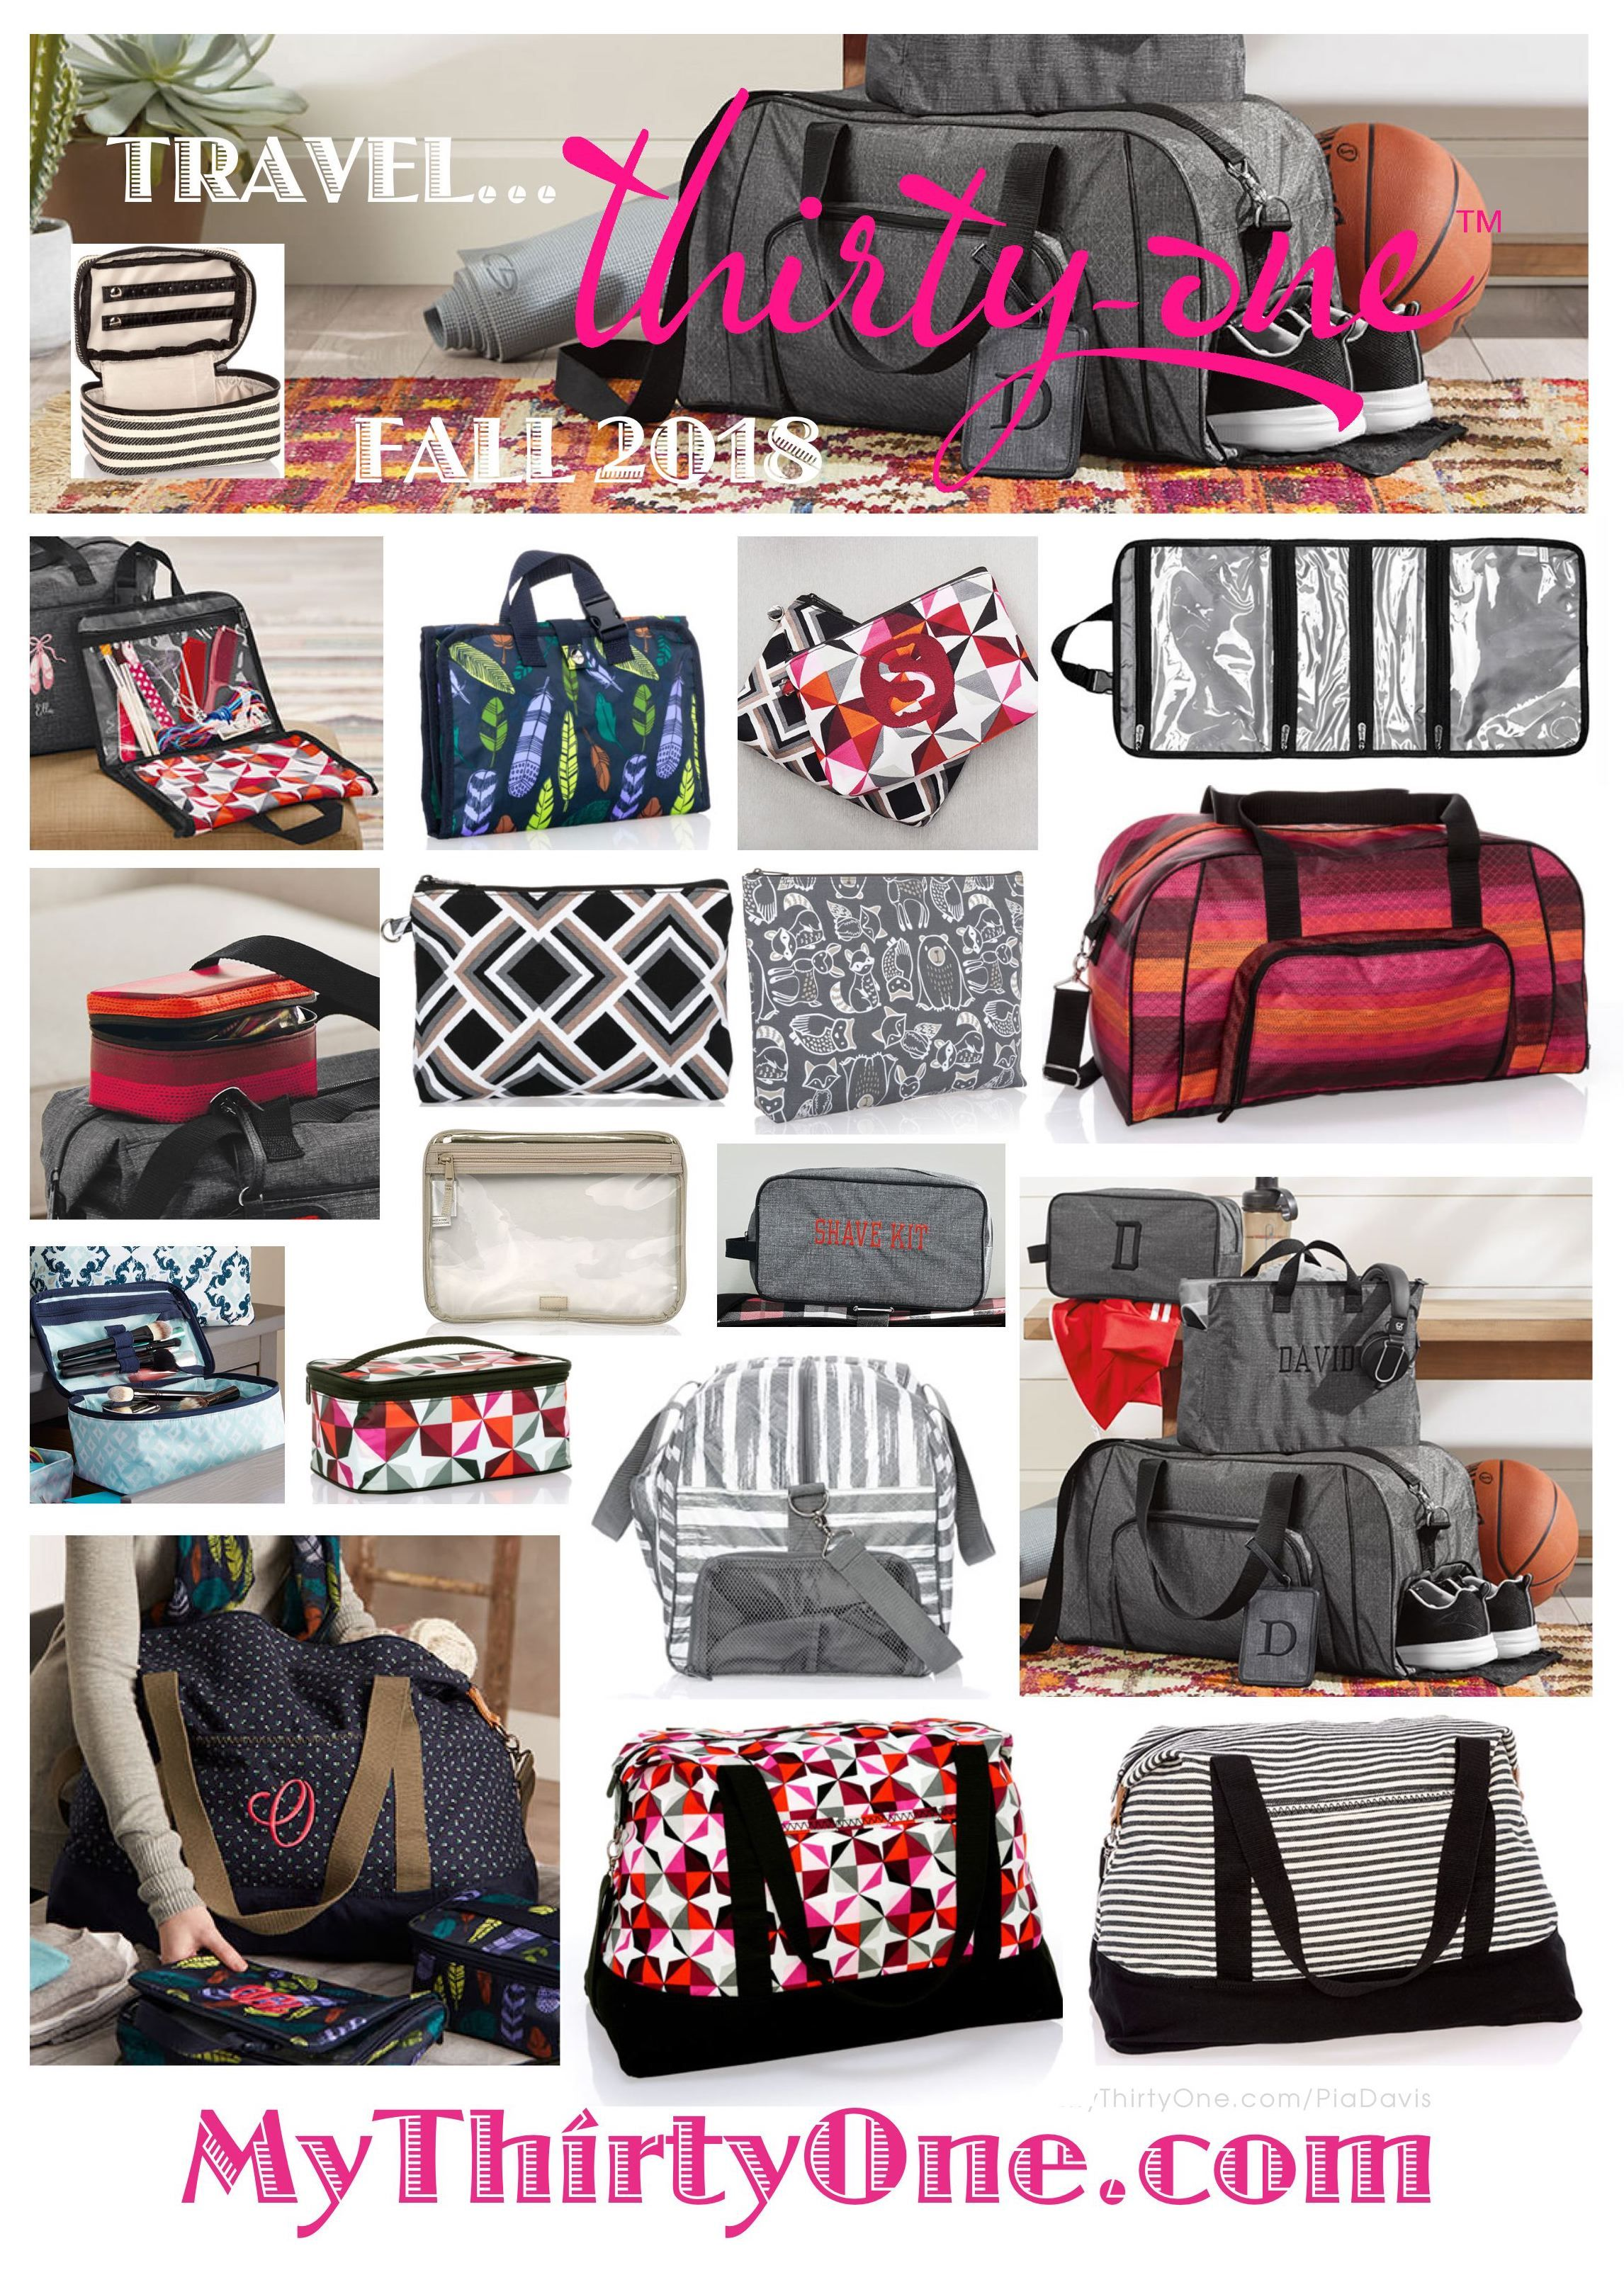 31 Travel With Thirty One Gifts This Fall 2018 Duffles Overnight Bags As Well Many Accessories Can Be Found At Mythirtyone Piadavis